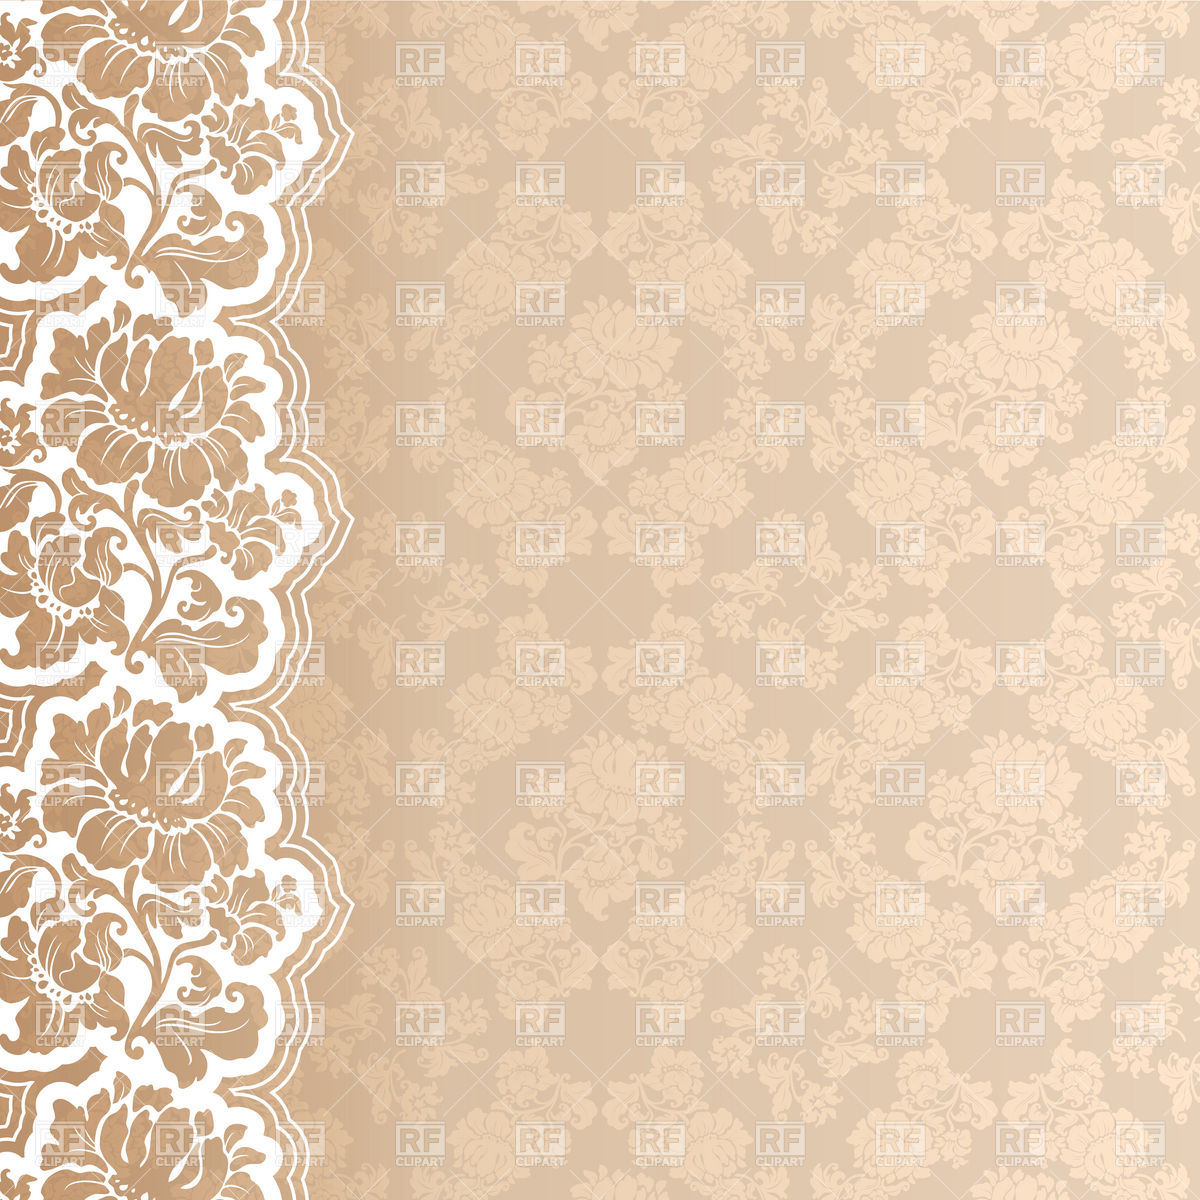 Wallpaper With Lace Border Download Royalty Free Vector Clipart  Eps